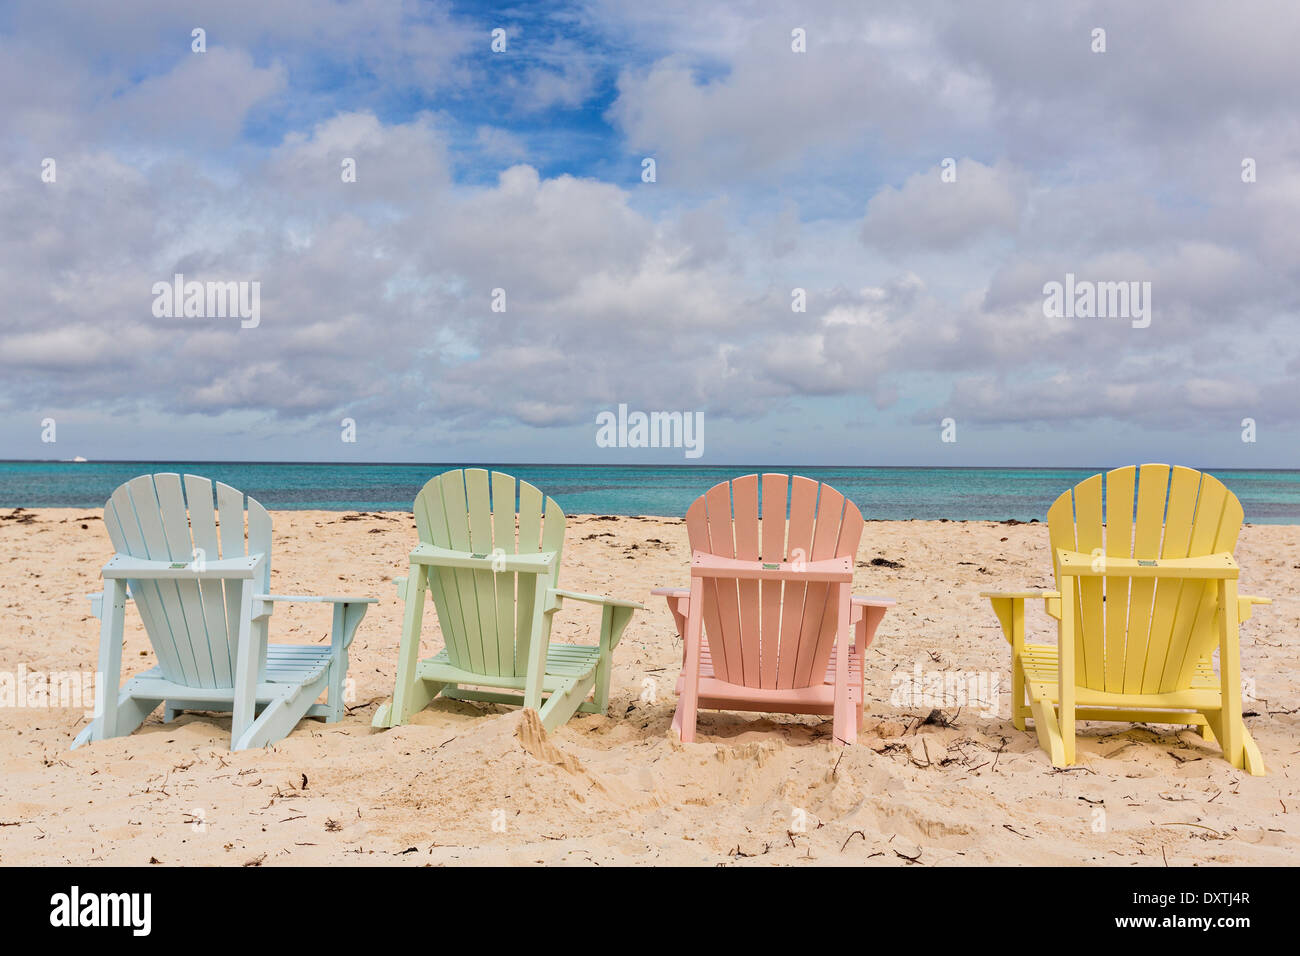 Charmant Pastel Colored Adirondack Chairs On Love Beach In Nassau, Bahamas